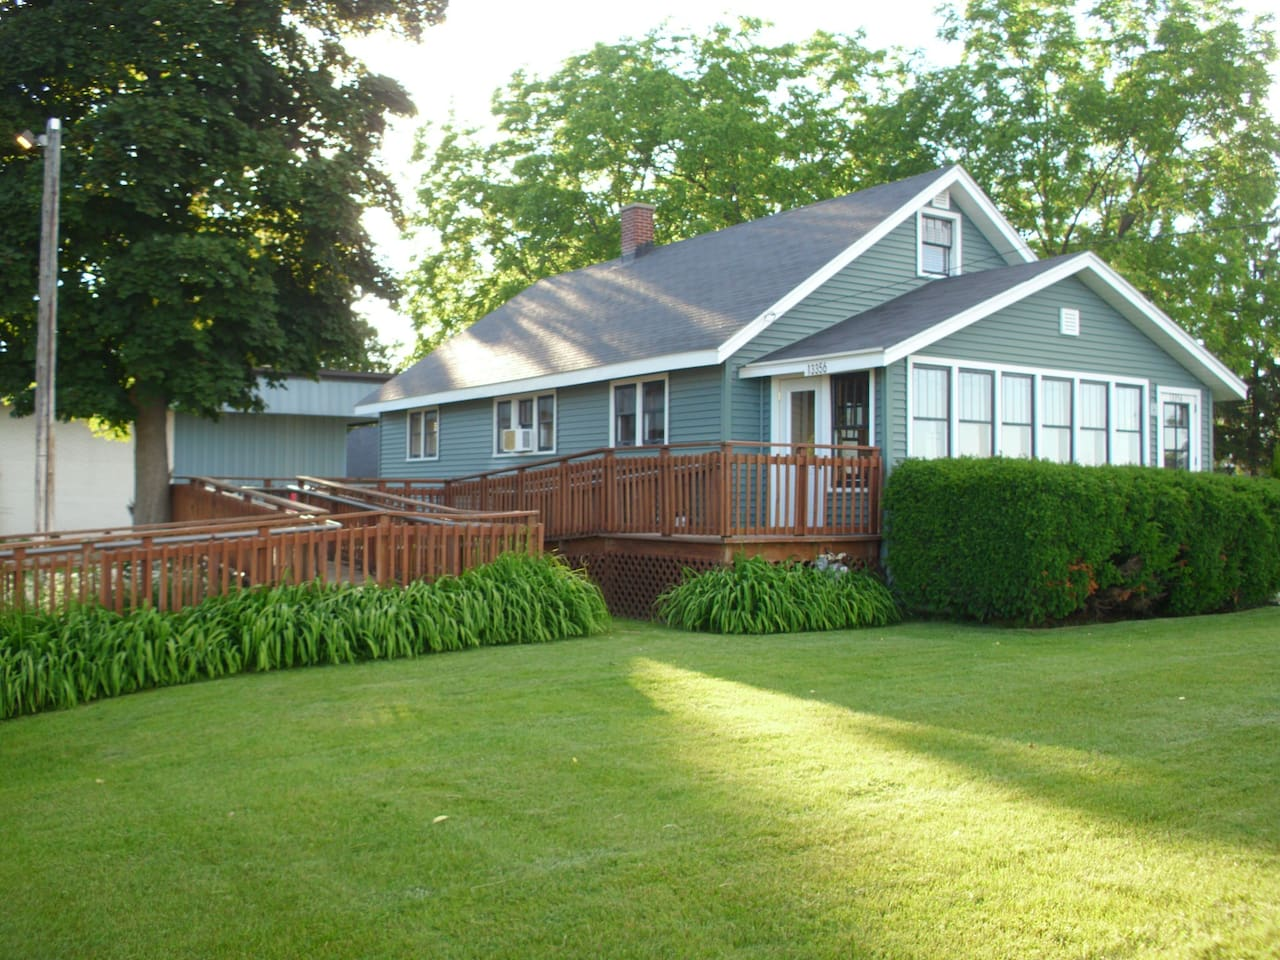 SLEEPS 8, TRAVERSE CITY 5 Minutes to Downtown - Houses for Rent in ...